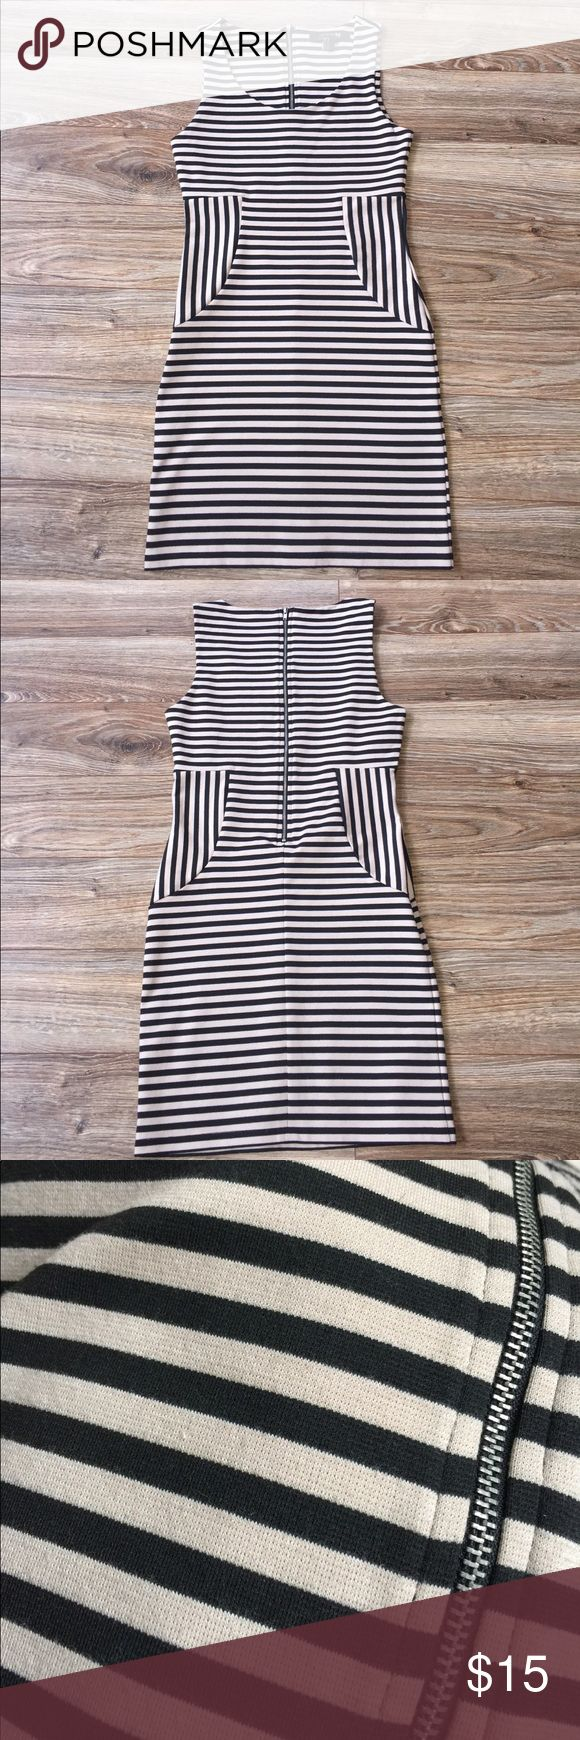 Black and Nude Mini Dress Fitted & stretchy, nude/black striped dress. Zipper down the back. The tag says a medium but runs small... fits more like a size Small or a 2/4 dress size. Like New! Forever 21 Dresses Mini